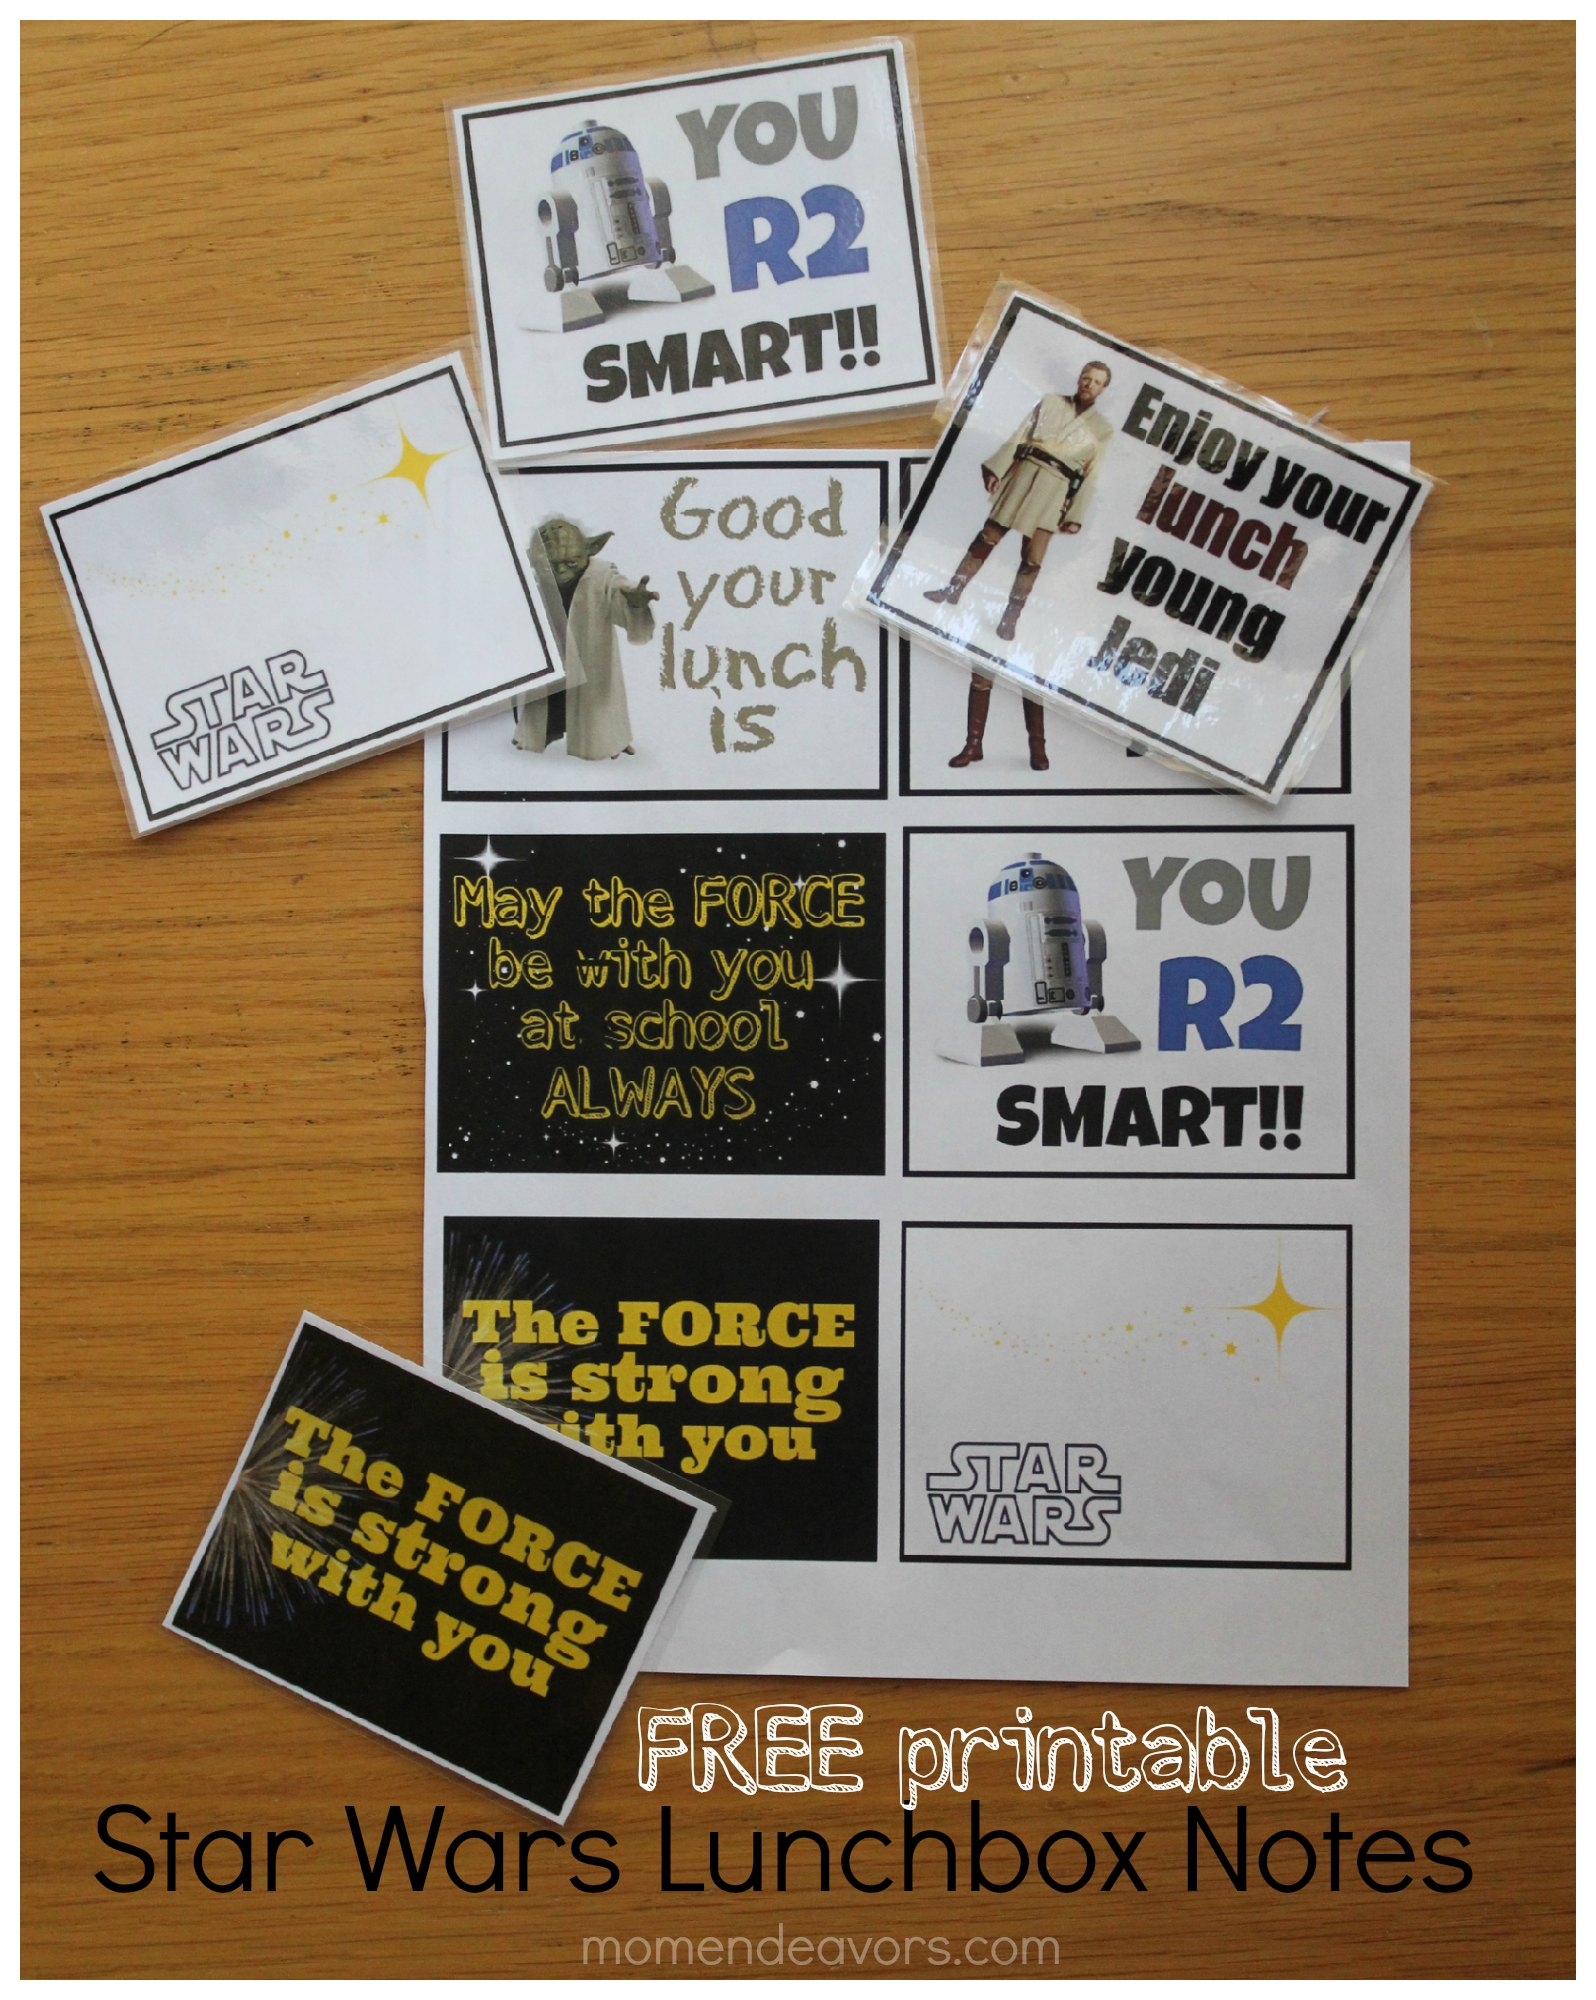 Free printable Star Wars Lunchbox Notes & Star Wars School Lunch with FREE Lunch Box Printables Aboutintivar.Com